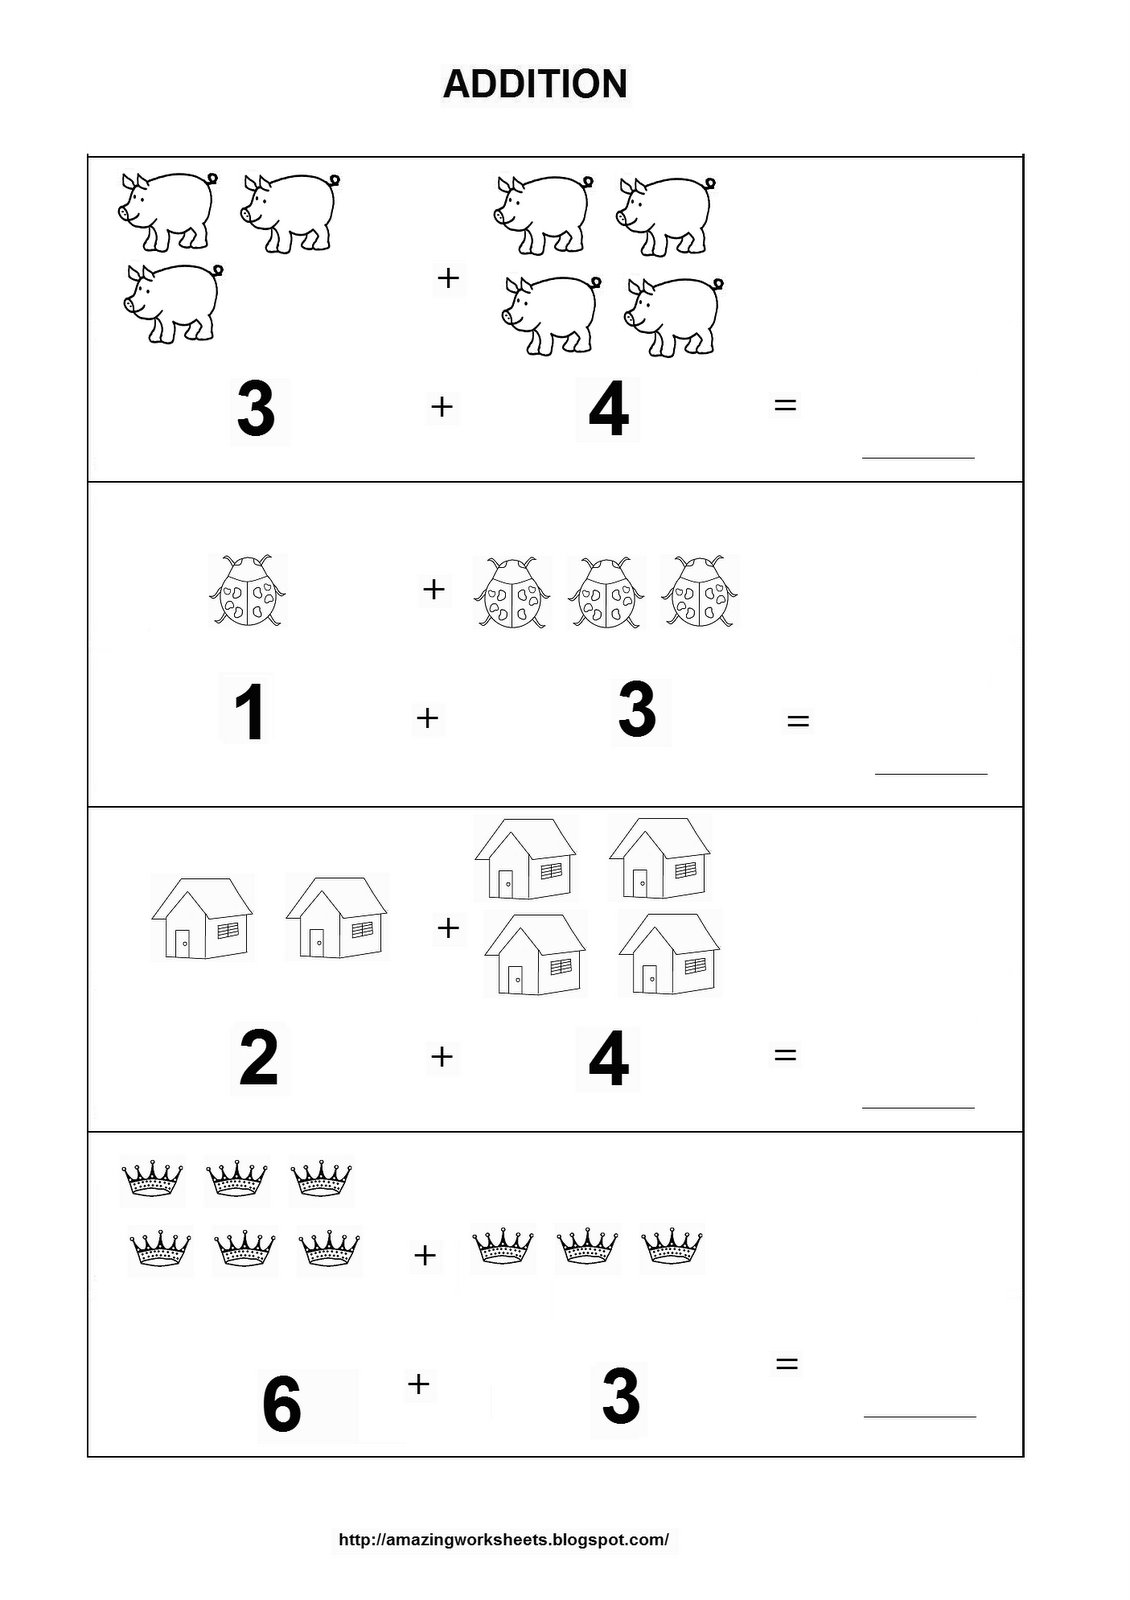 Kindergarten Math Addition Practice Worksheet